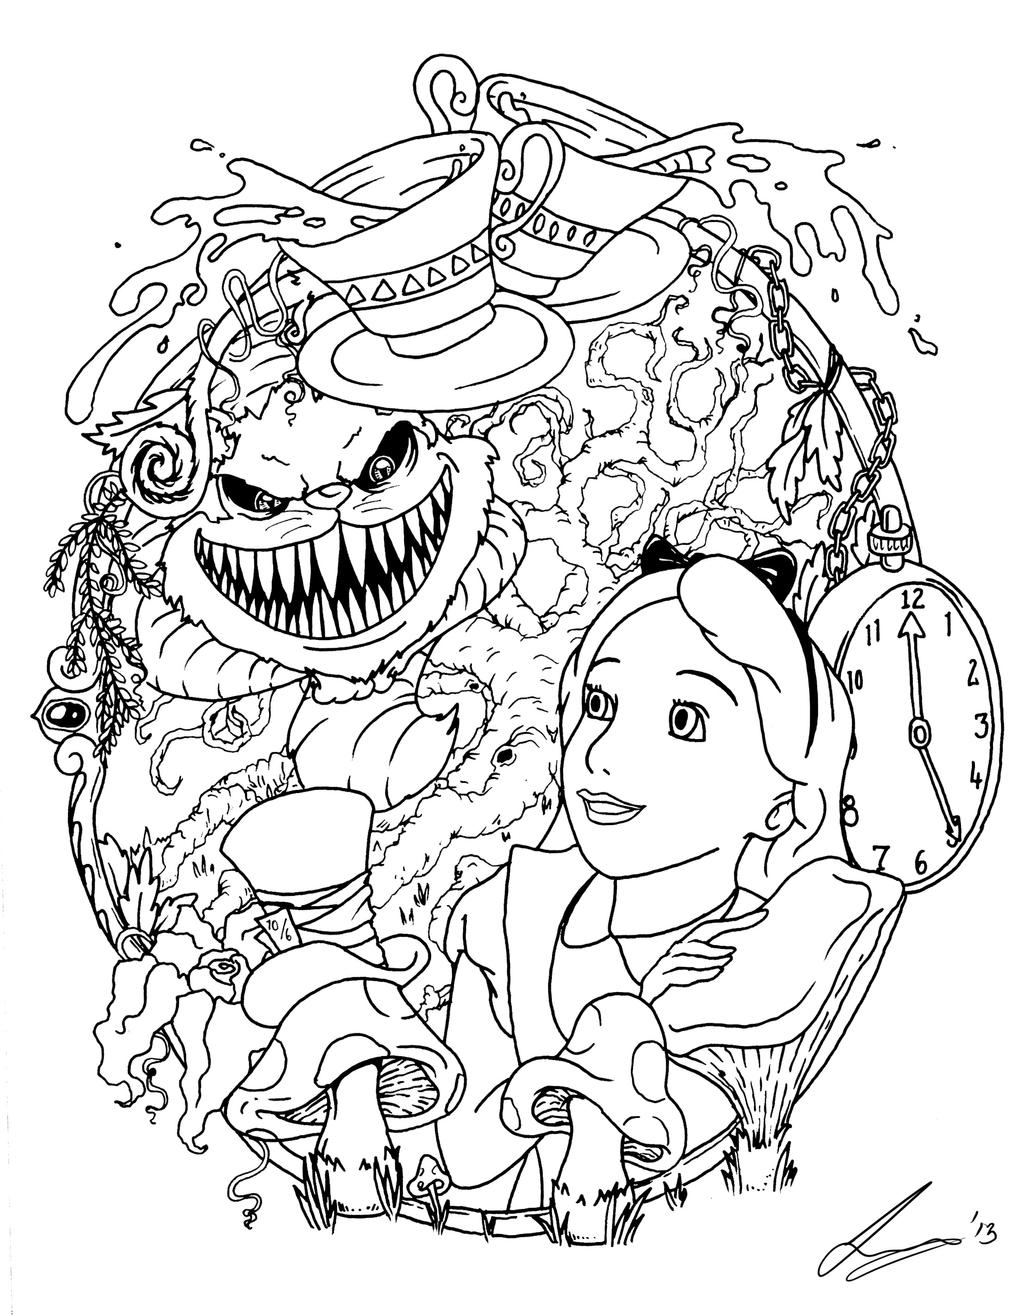 Tattoo Line Drawing Software : Alice in wonderland tattoo flash by acidic on deviantart